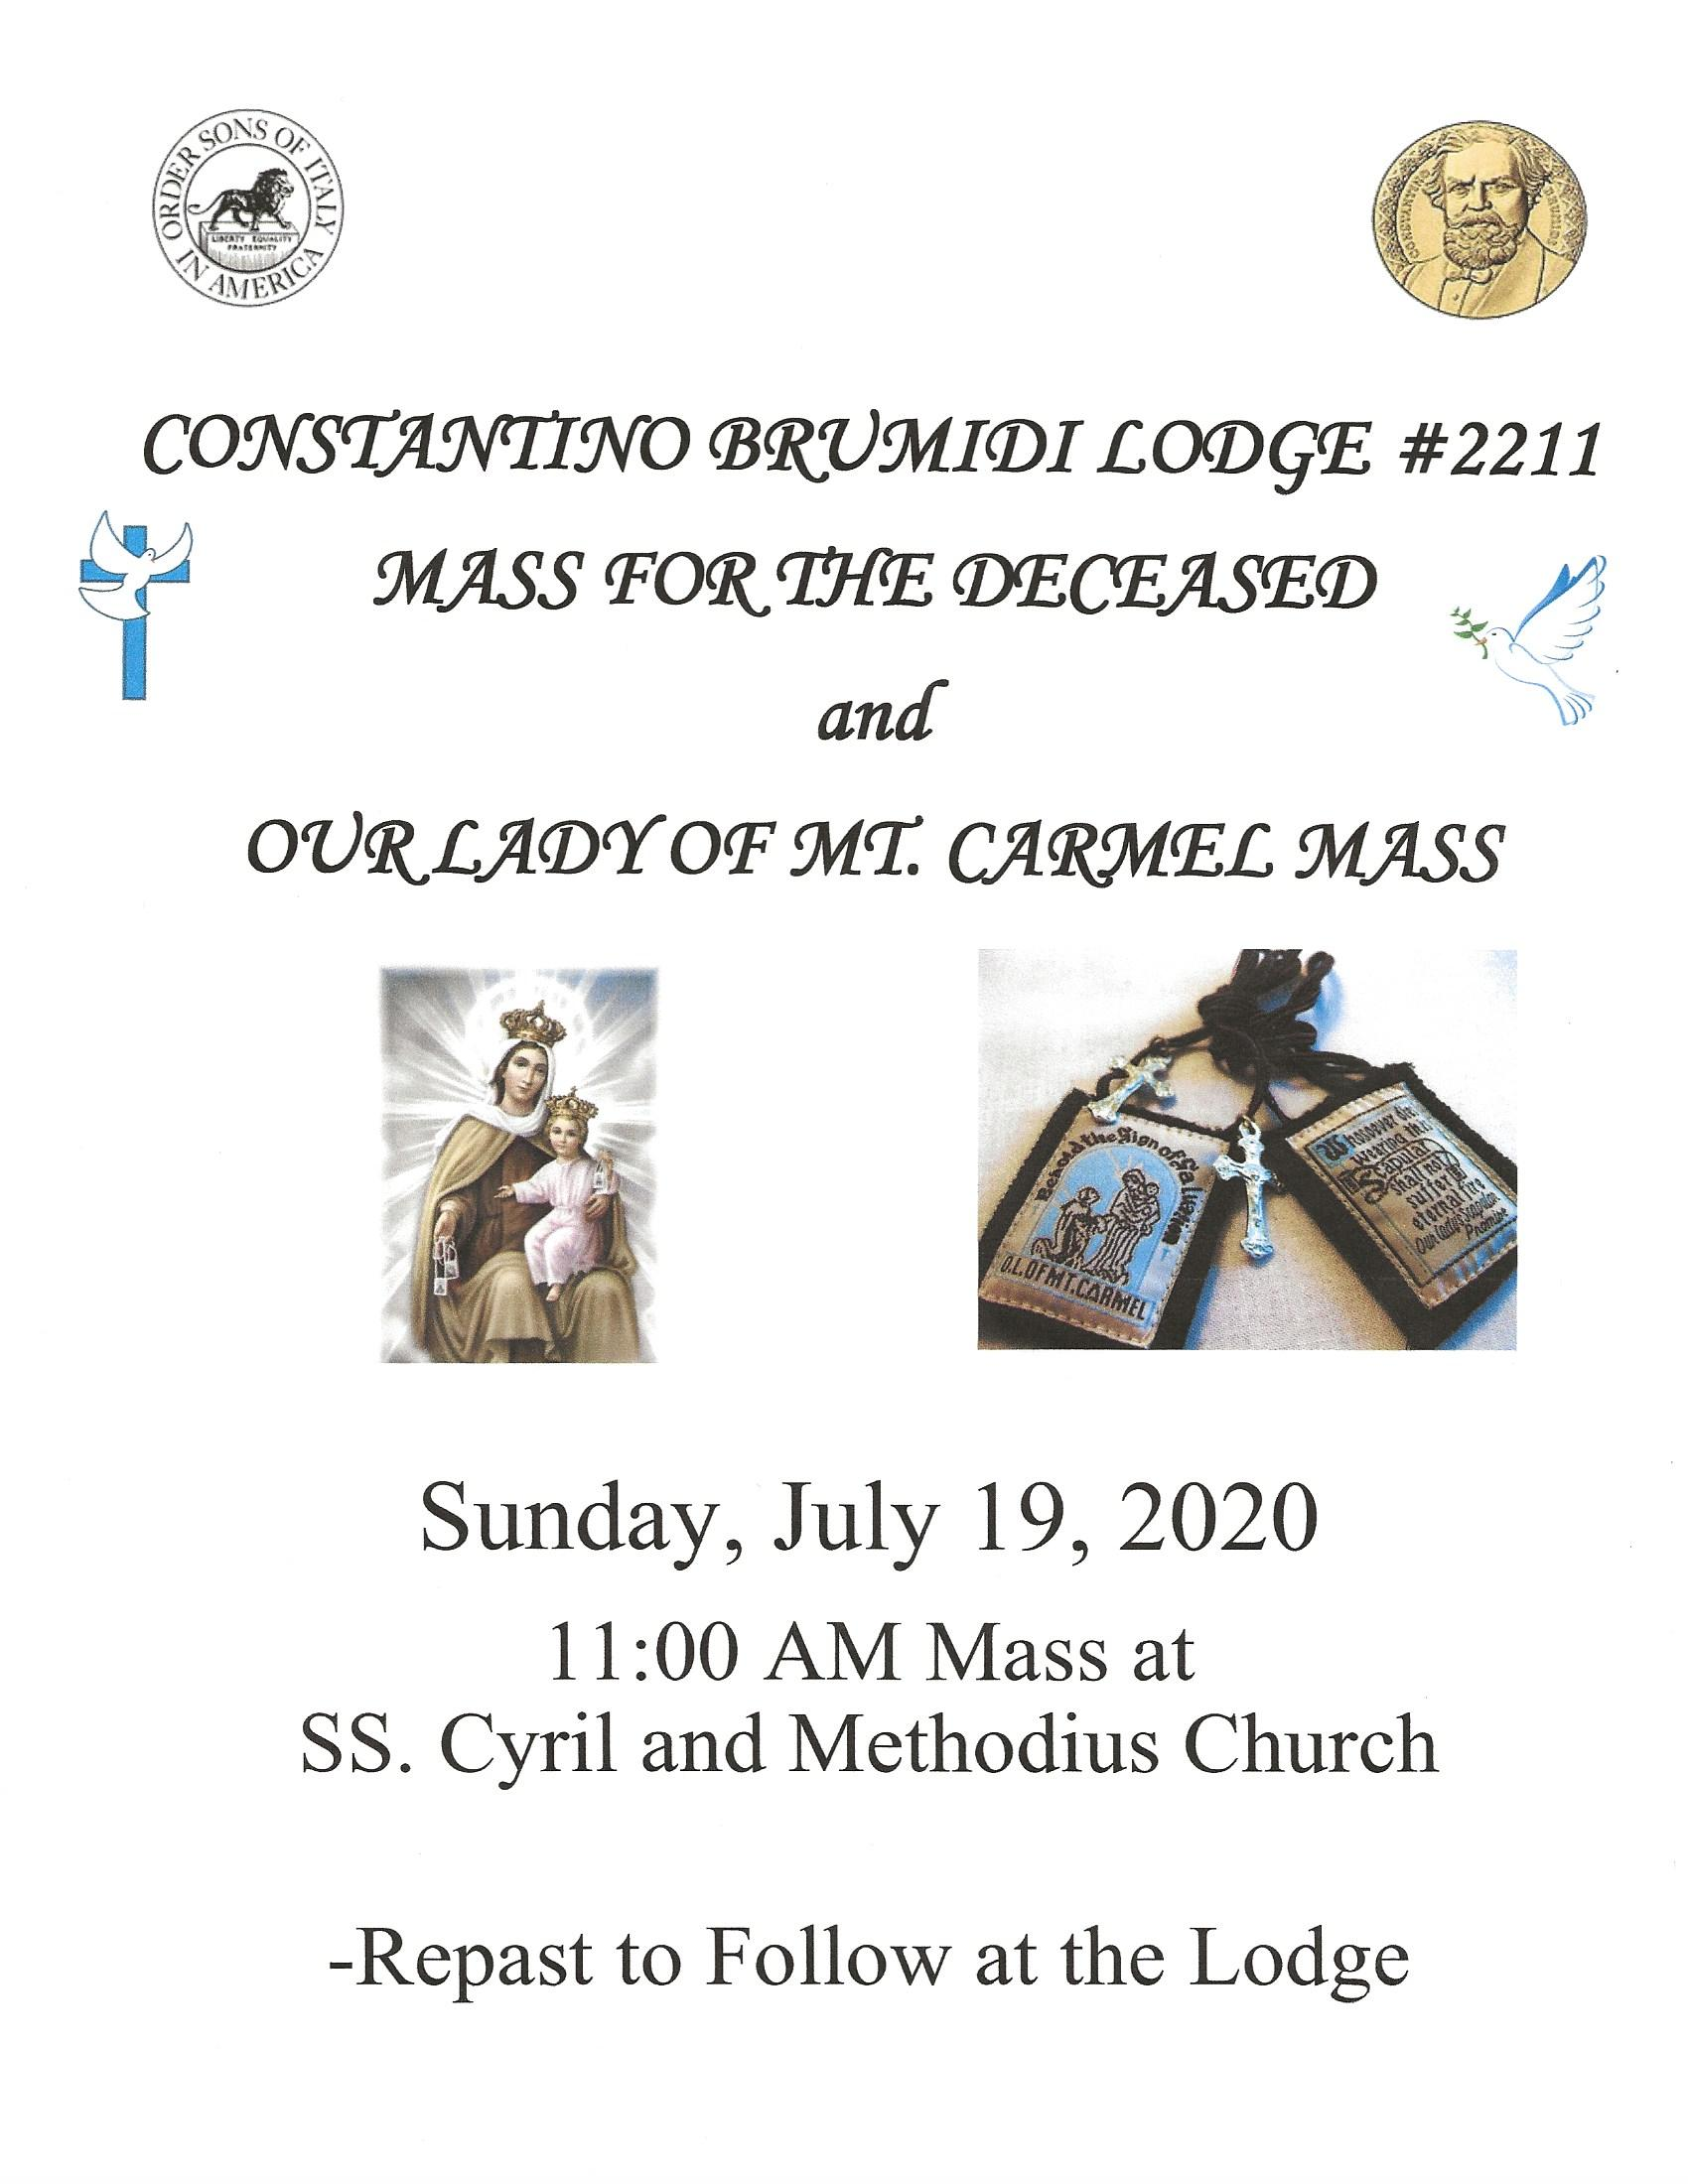 Mass for the Deceased flyer 2020